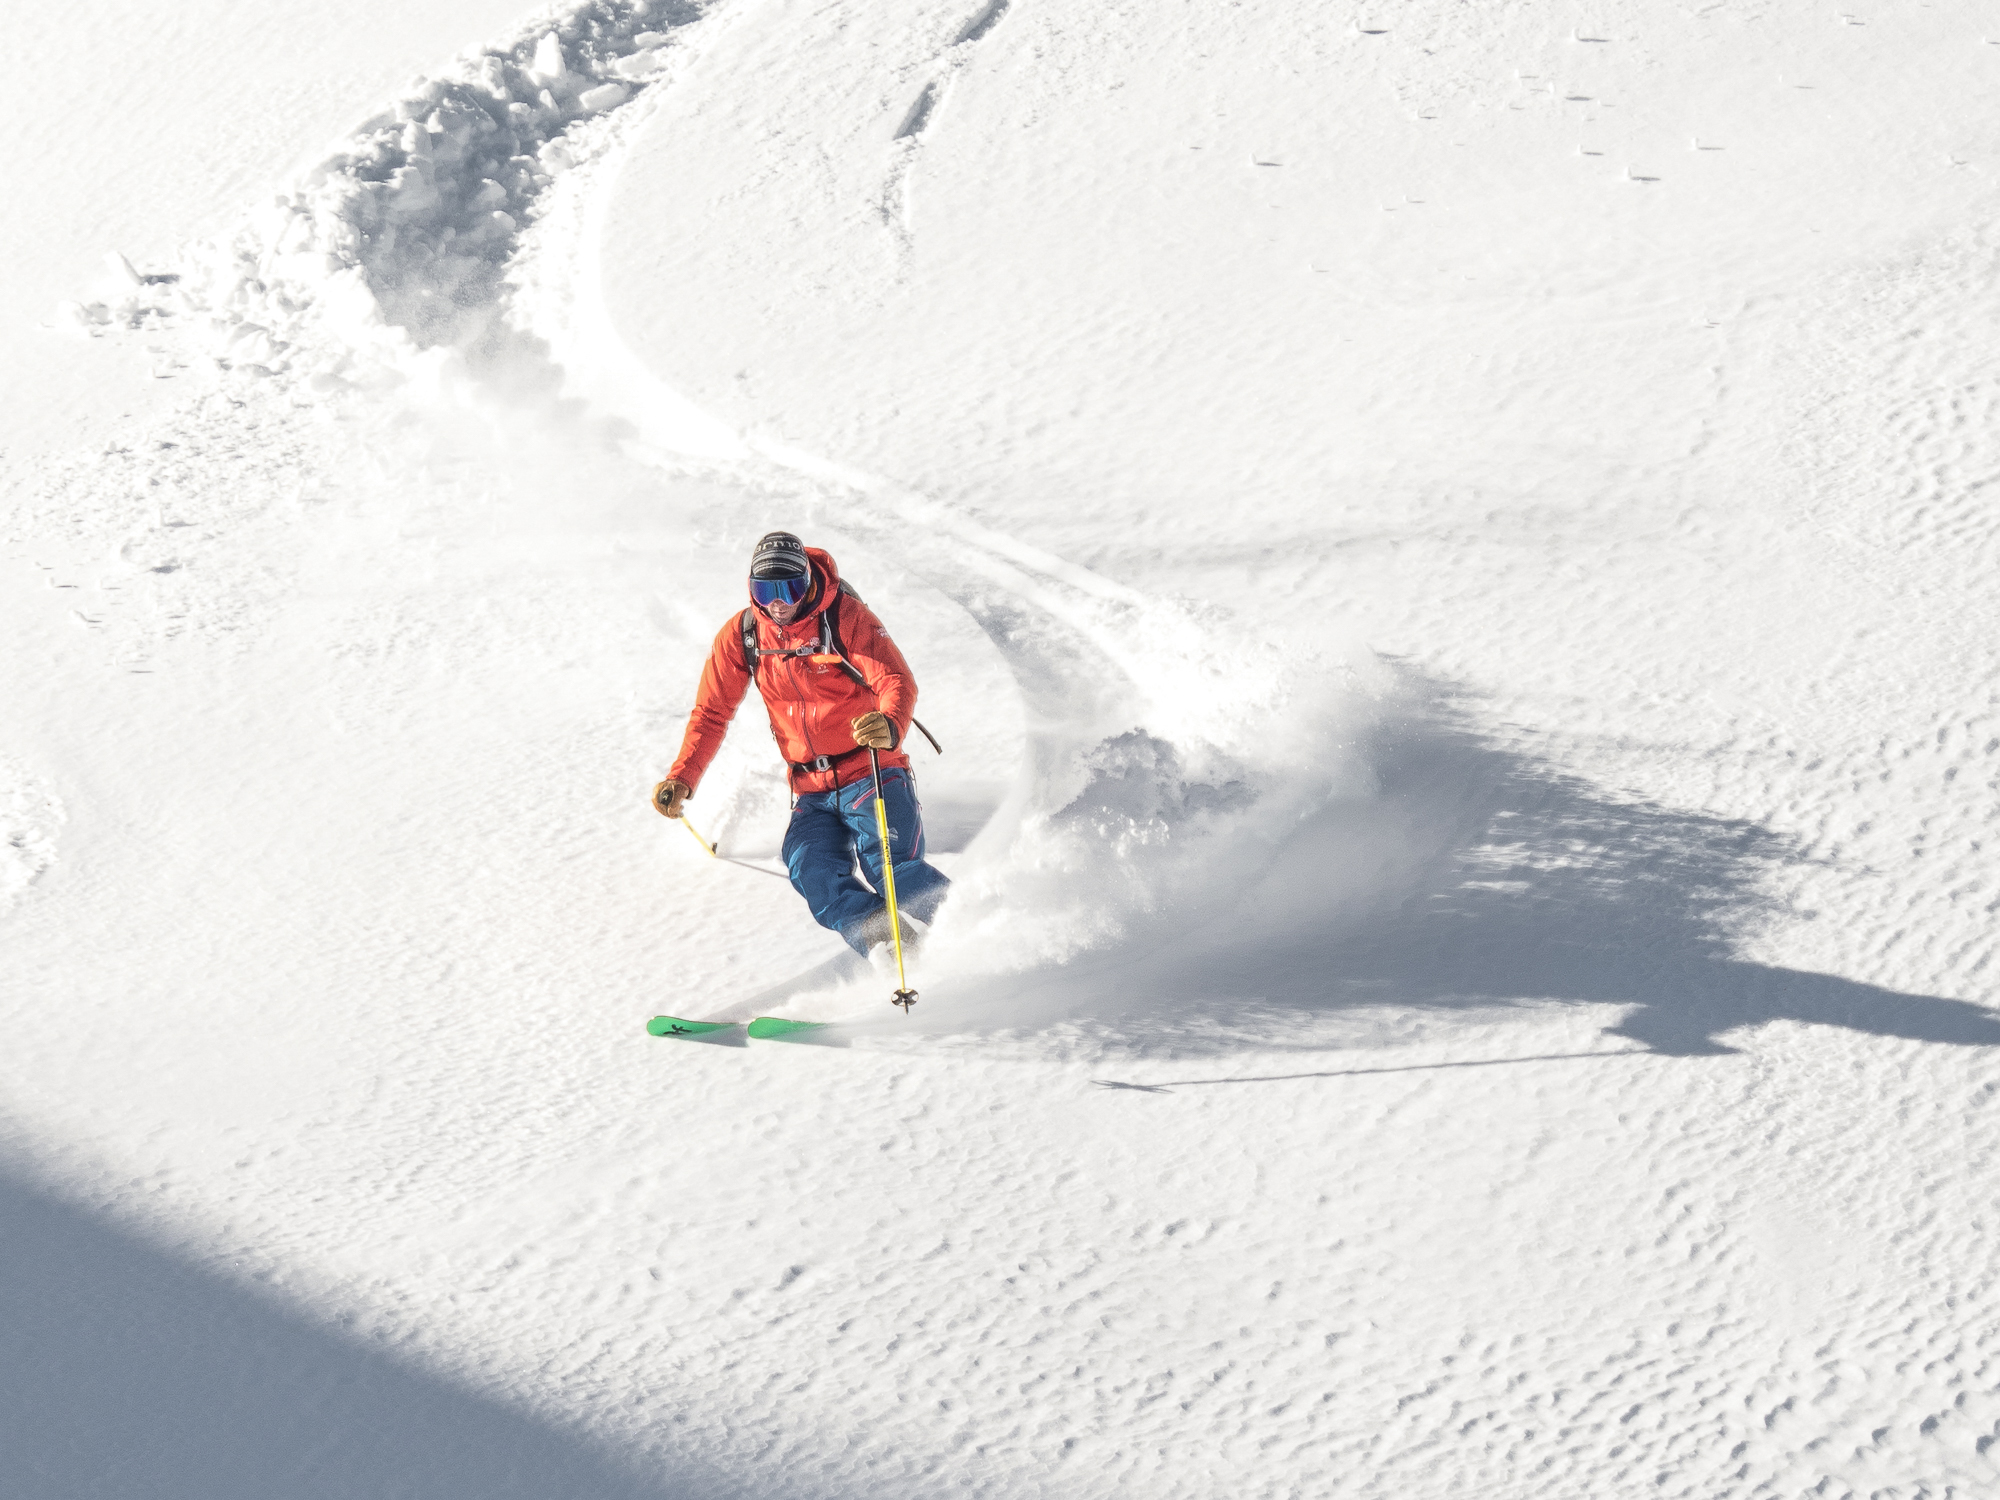 piste to powder mountain guides st anton arlberg off piste guiding | bergführer und ski guides